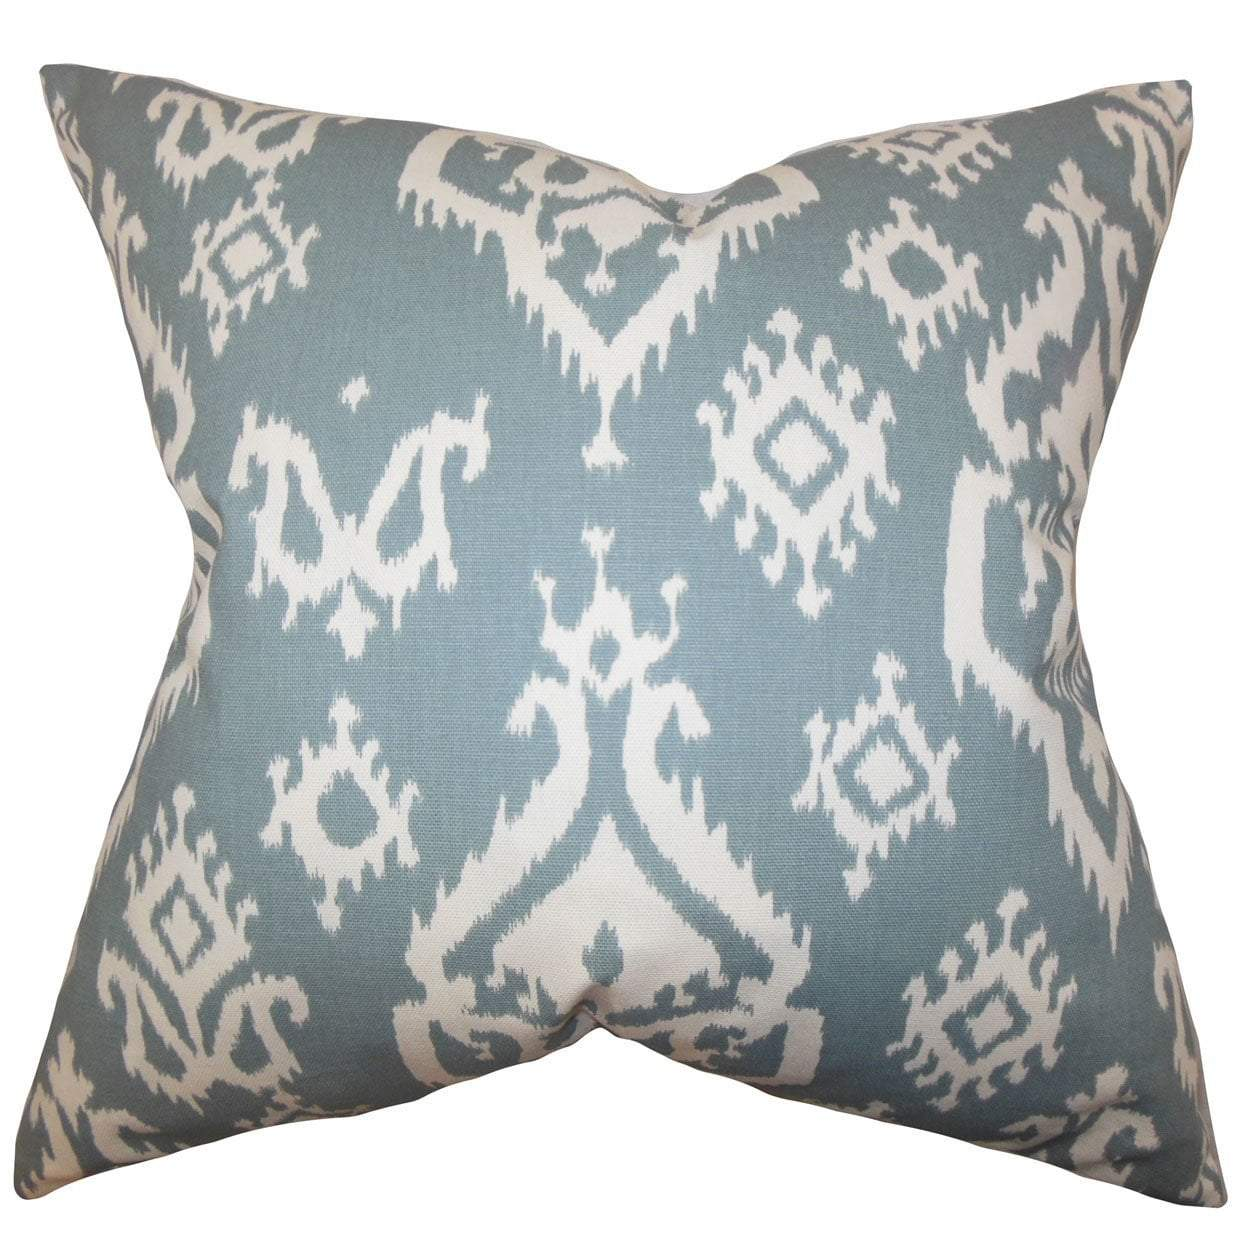 Mosley Throw Pillow Cover